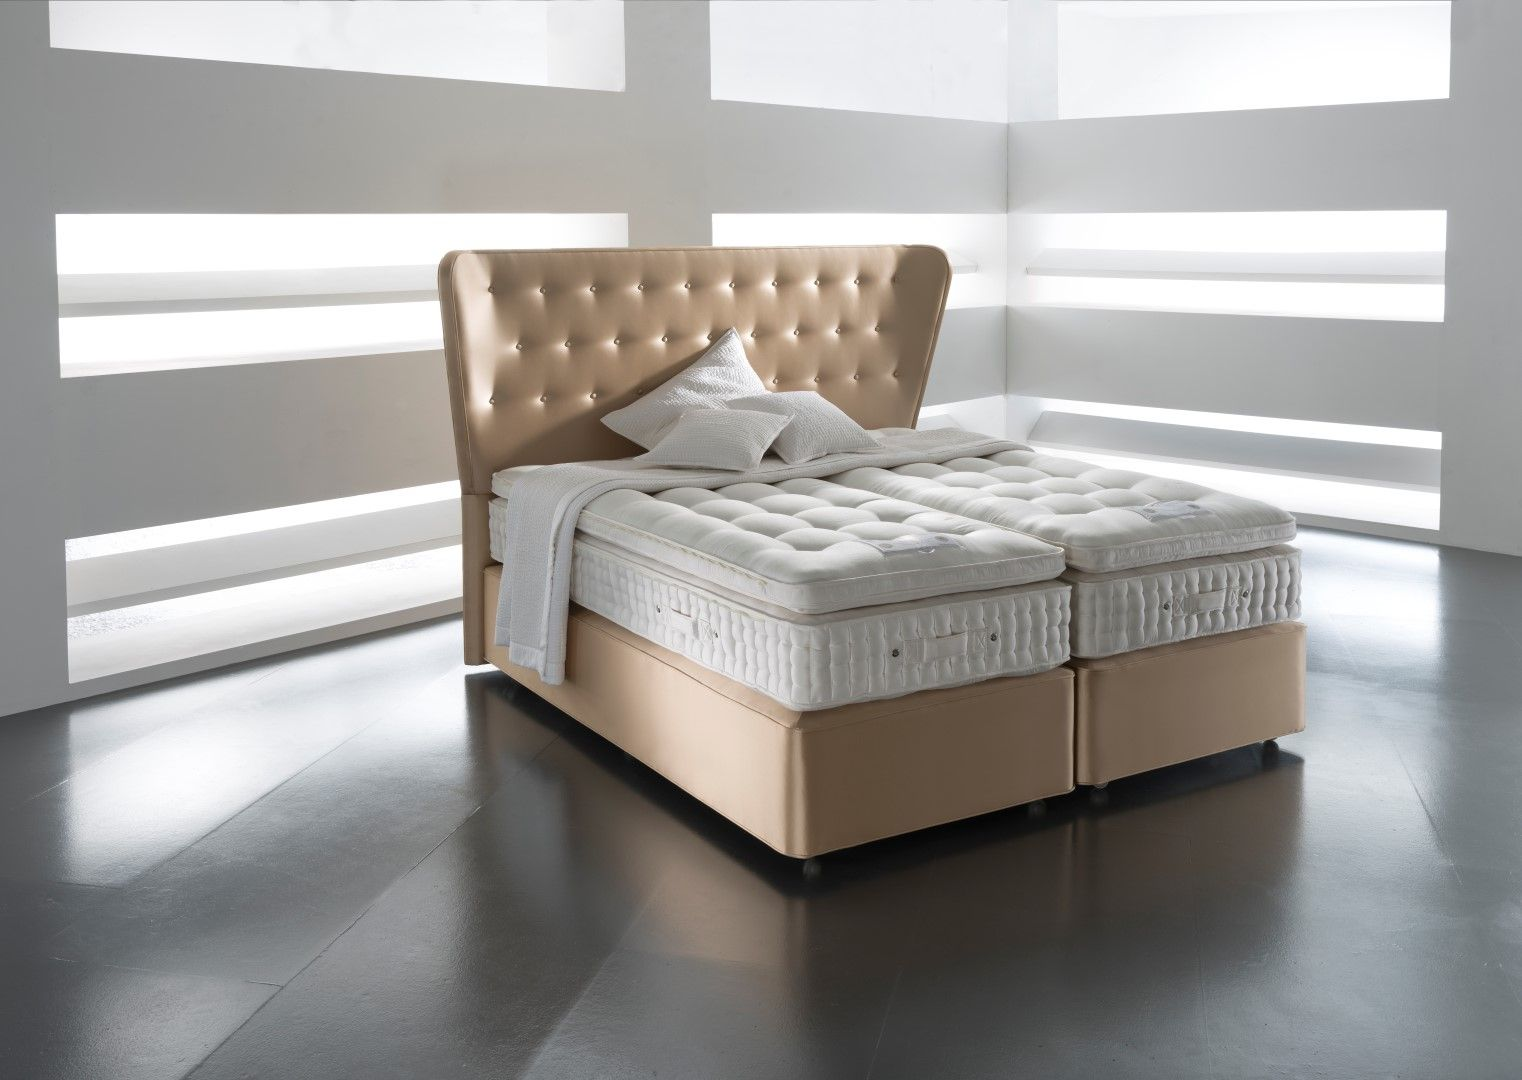 Luxurioses Bett Hastens Tradition Und Innovation Beautiful ...